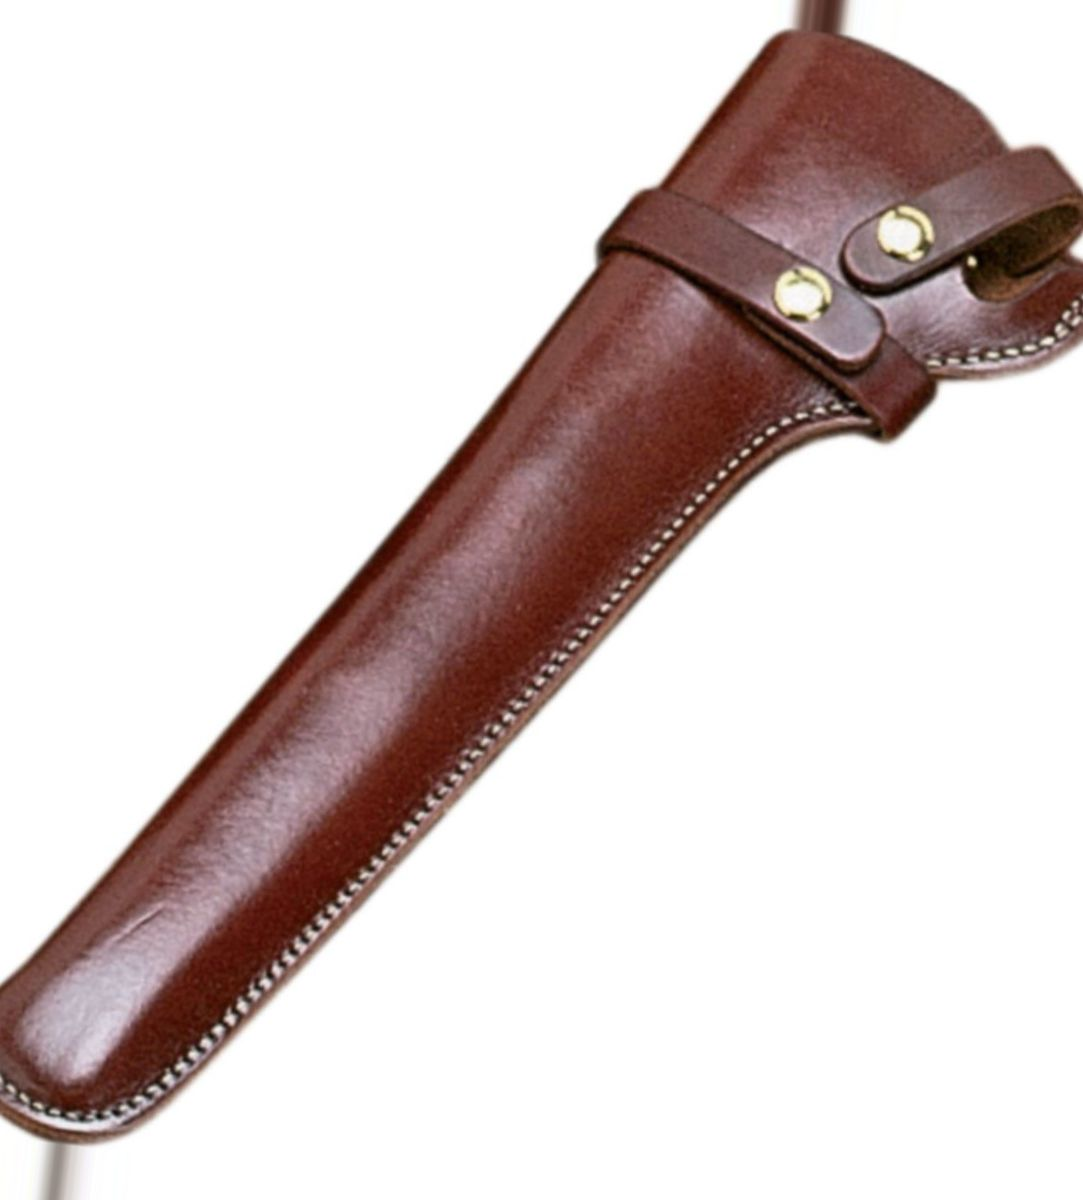 Triple K Leather Holster for Army Target Blackpowder Revolvers